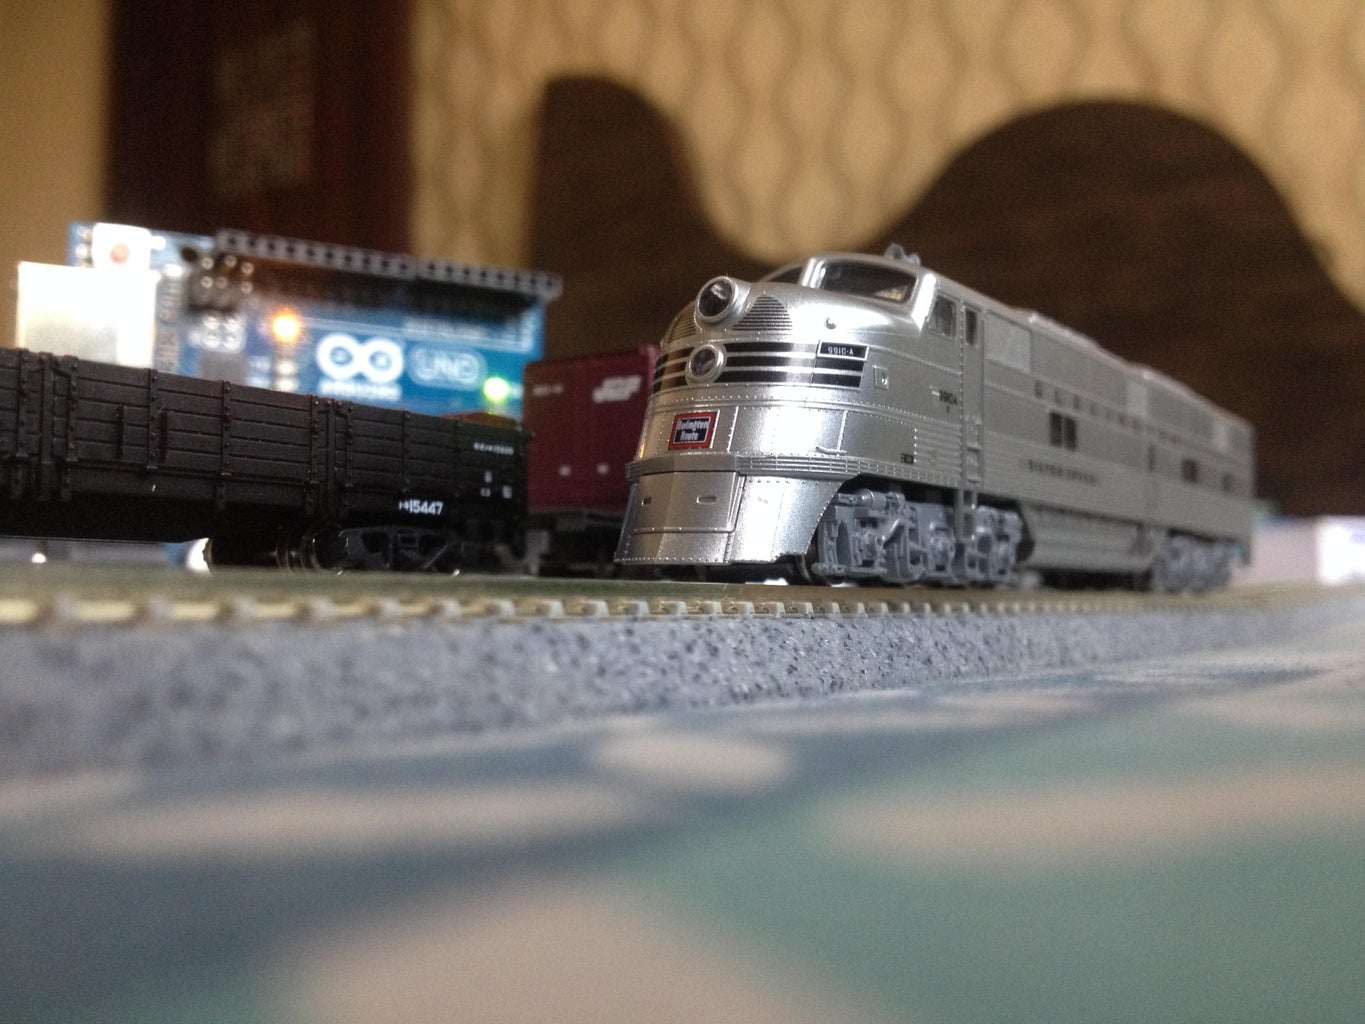 Model Railway Layout With Automated Passing Siding (V2.0)